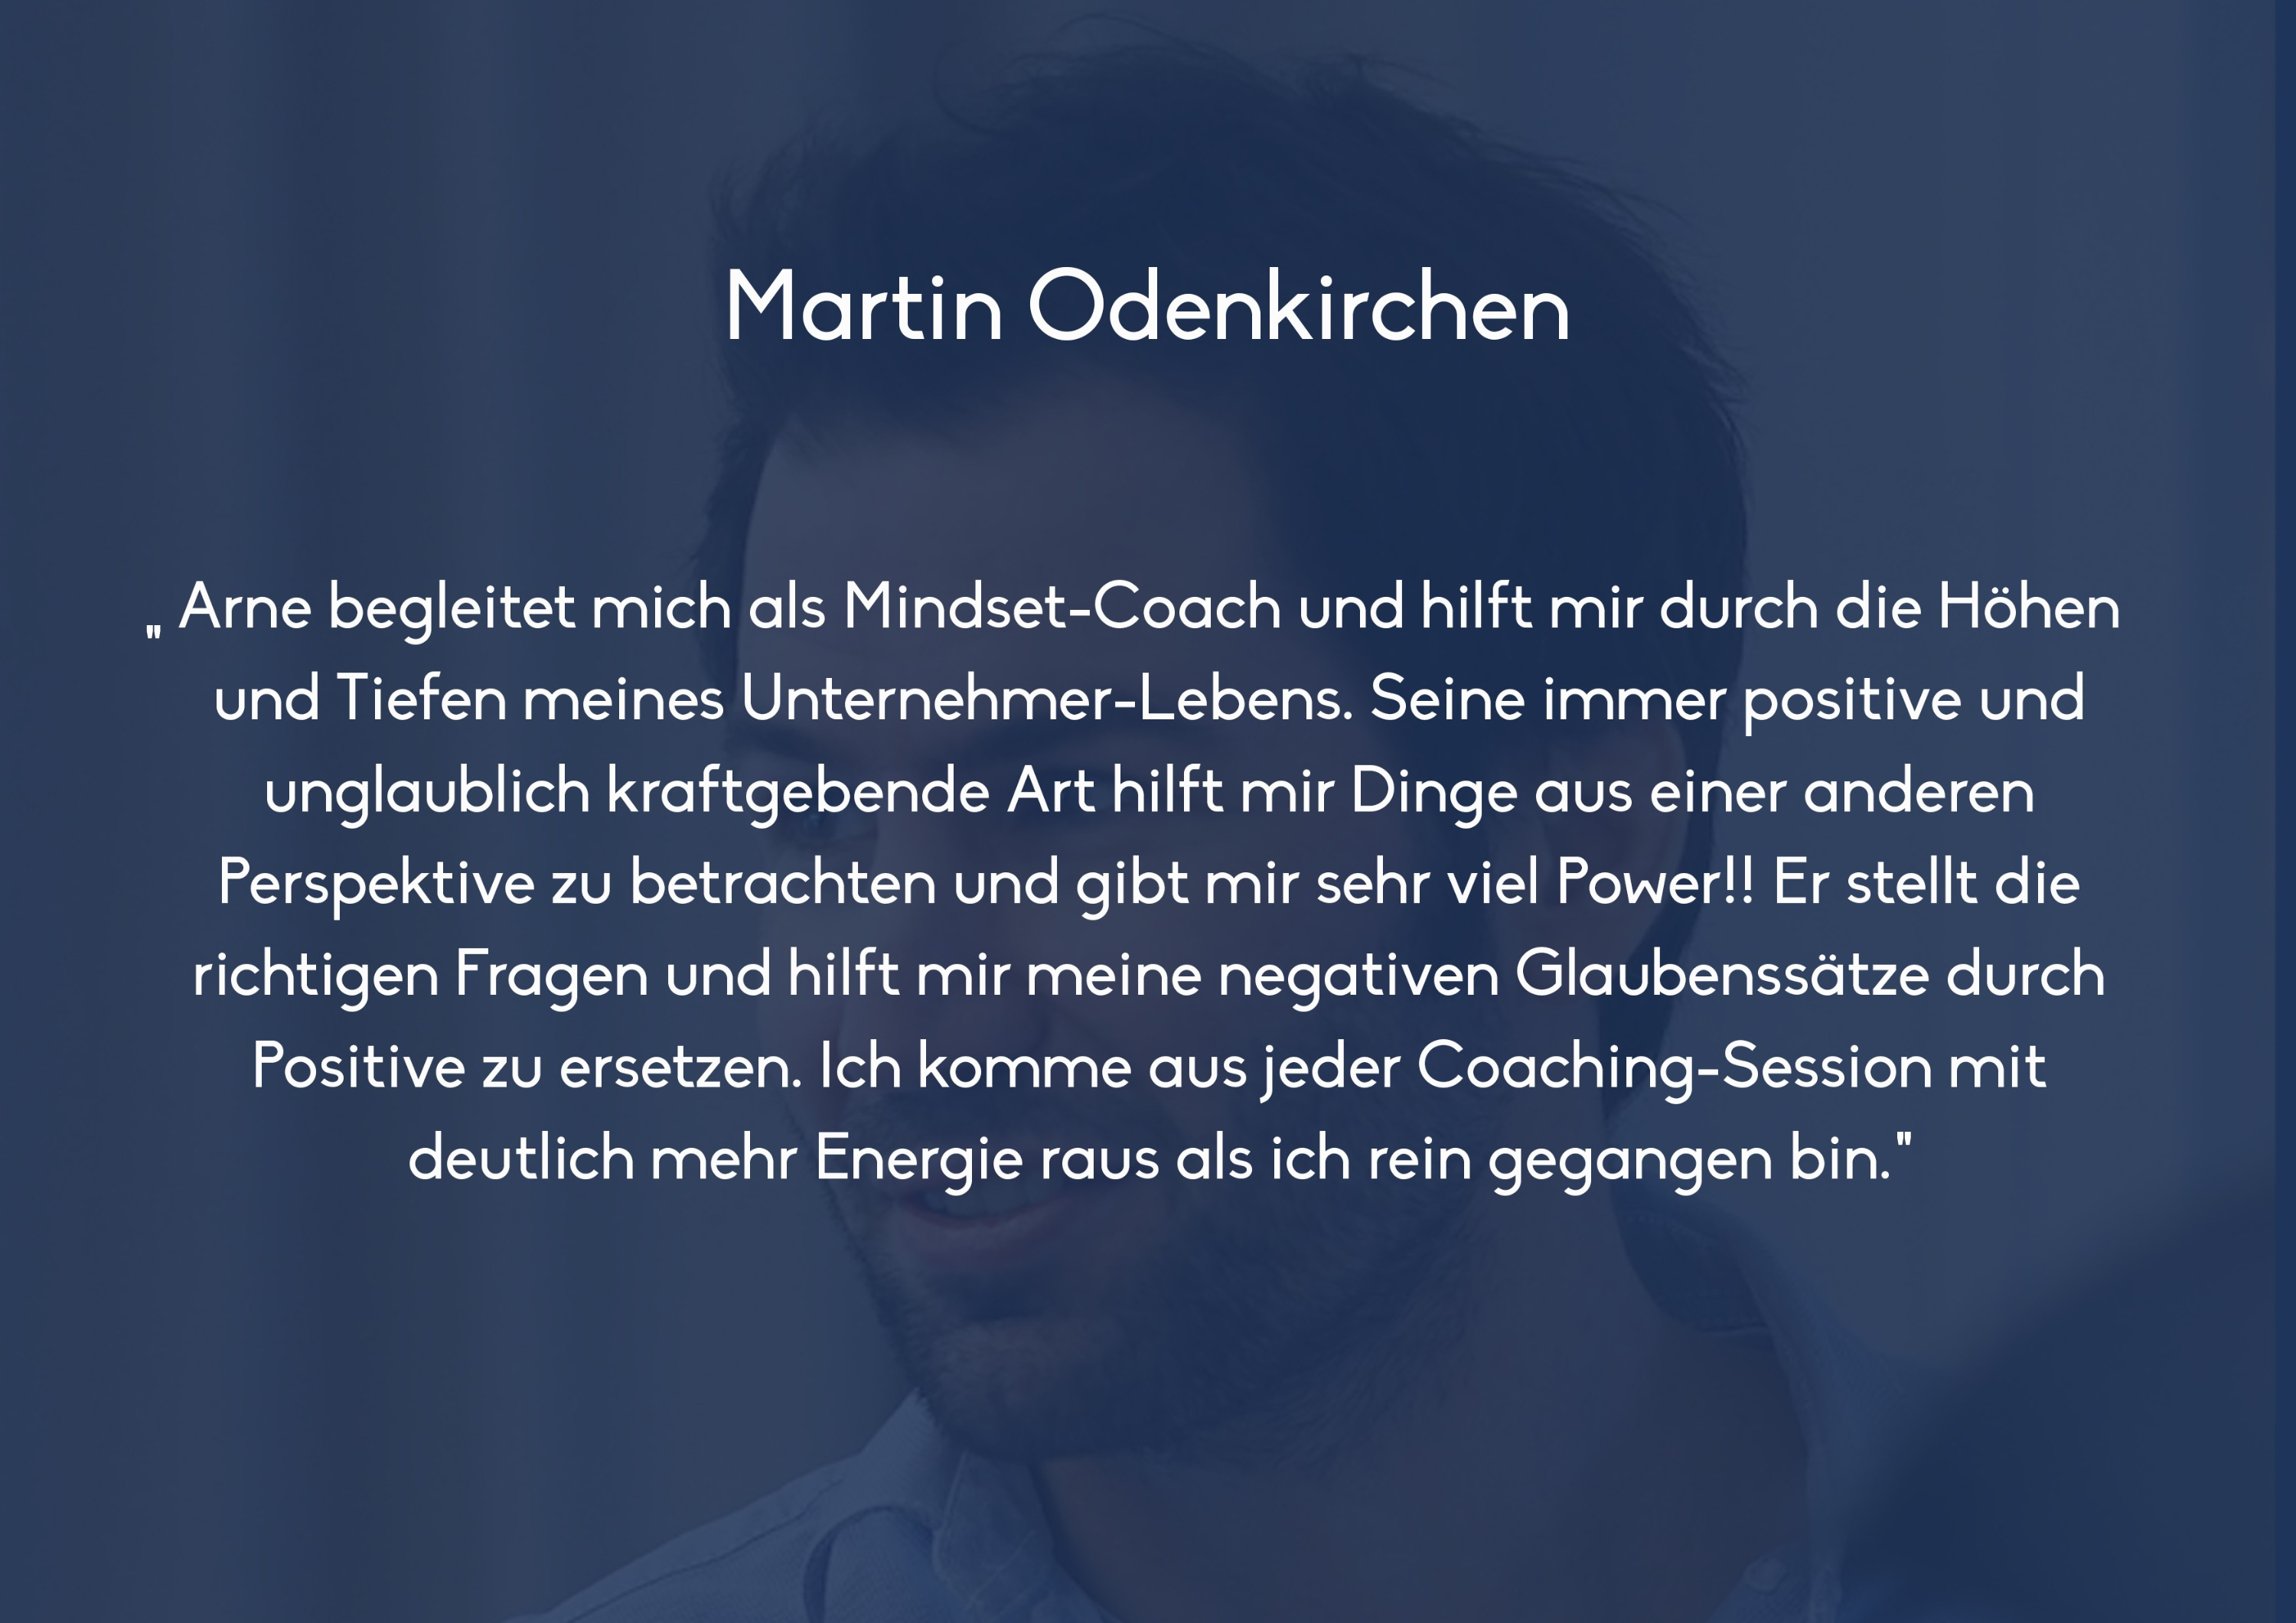 Martin%20Odenkirchen_edited